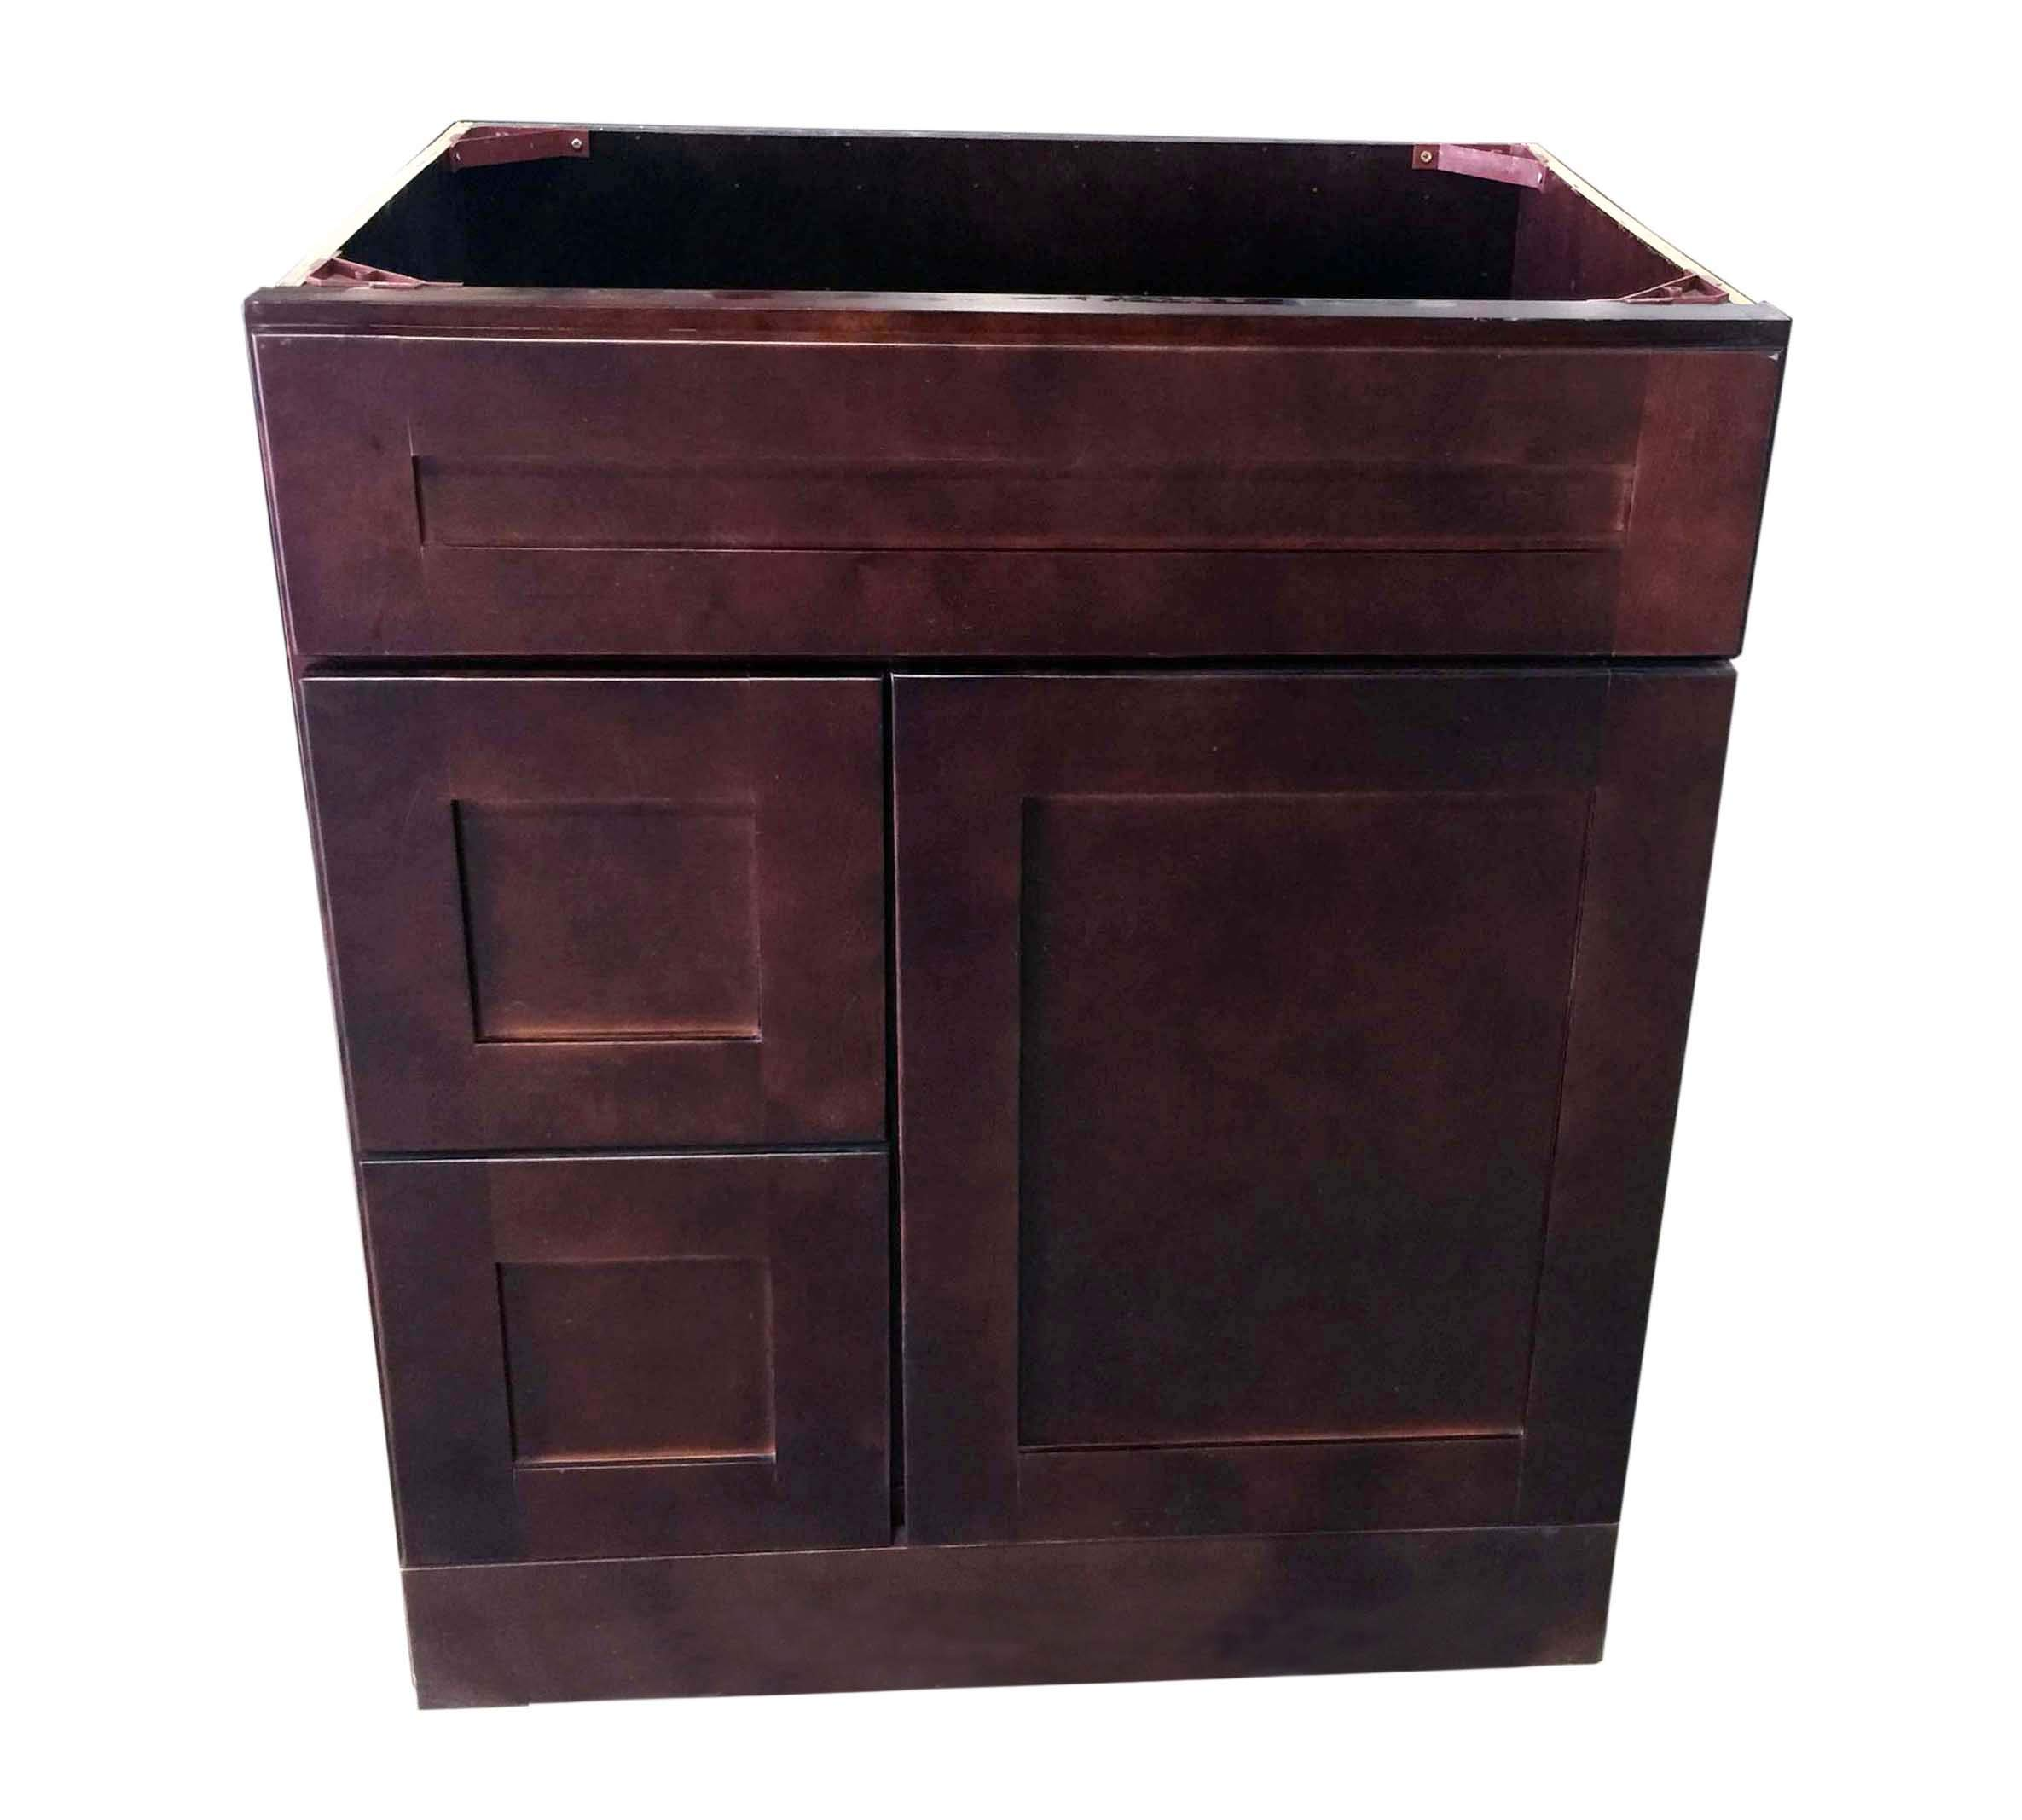 "New Espreso shaker Single-sink Bathroom Vanity Base Cabinet 30"" Wide x 21"" Deep ES-V3021DL/R - 30"" W x 34.5"" H x 21"" D assembly needed, Handles are not including !!! Solid wood with hardwood plywood construction,Made of wood - bathroom-vanities, bathroom-fixtures-hardware, bathroom - 71xZm9IlGIL -"